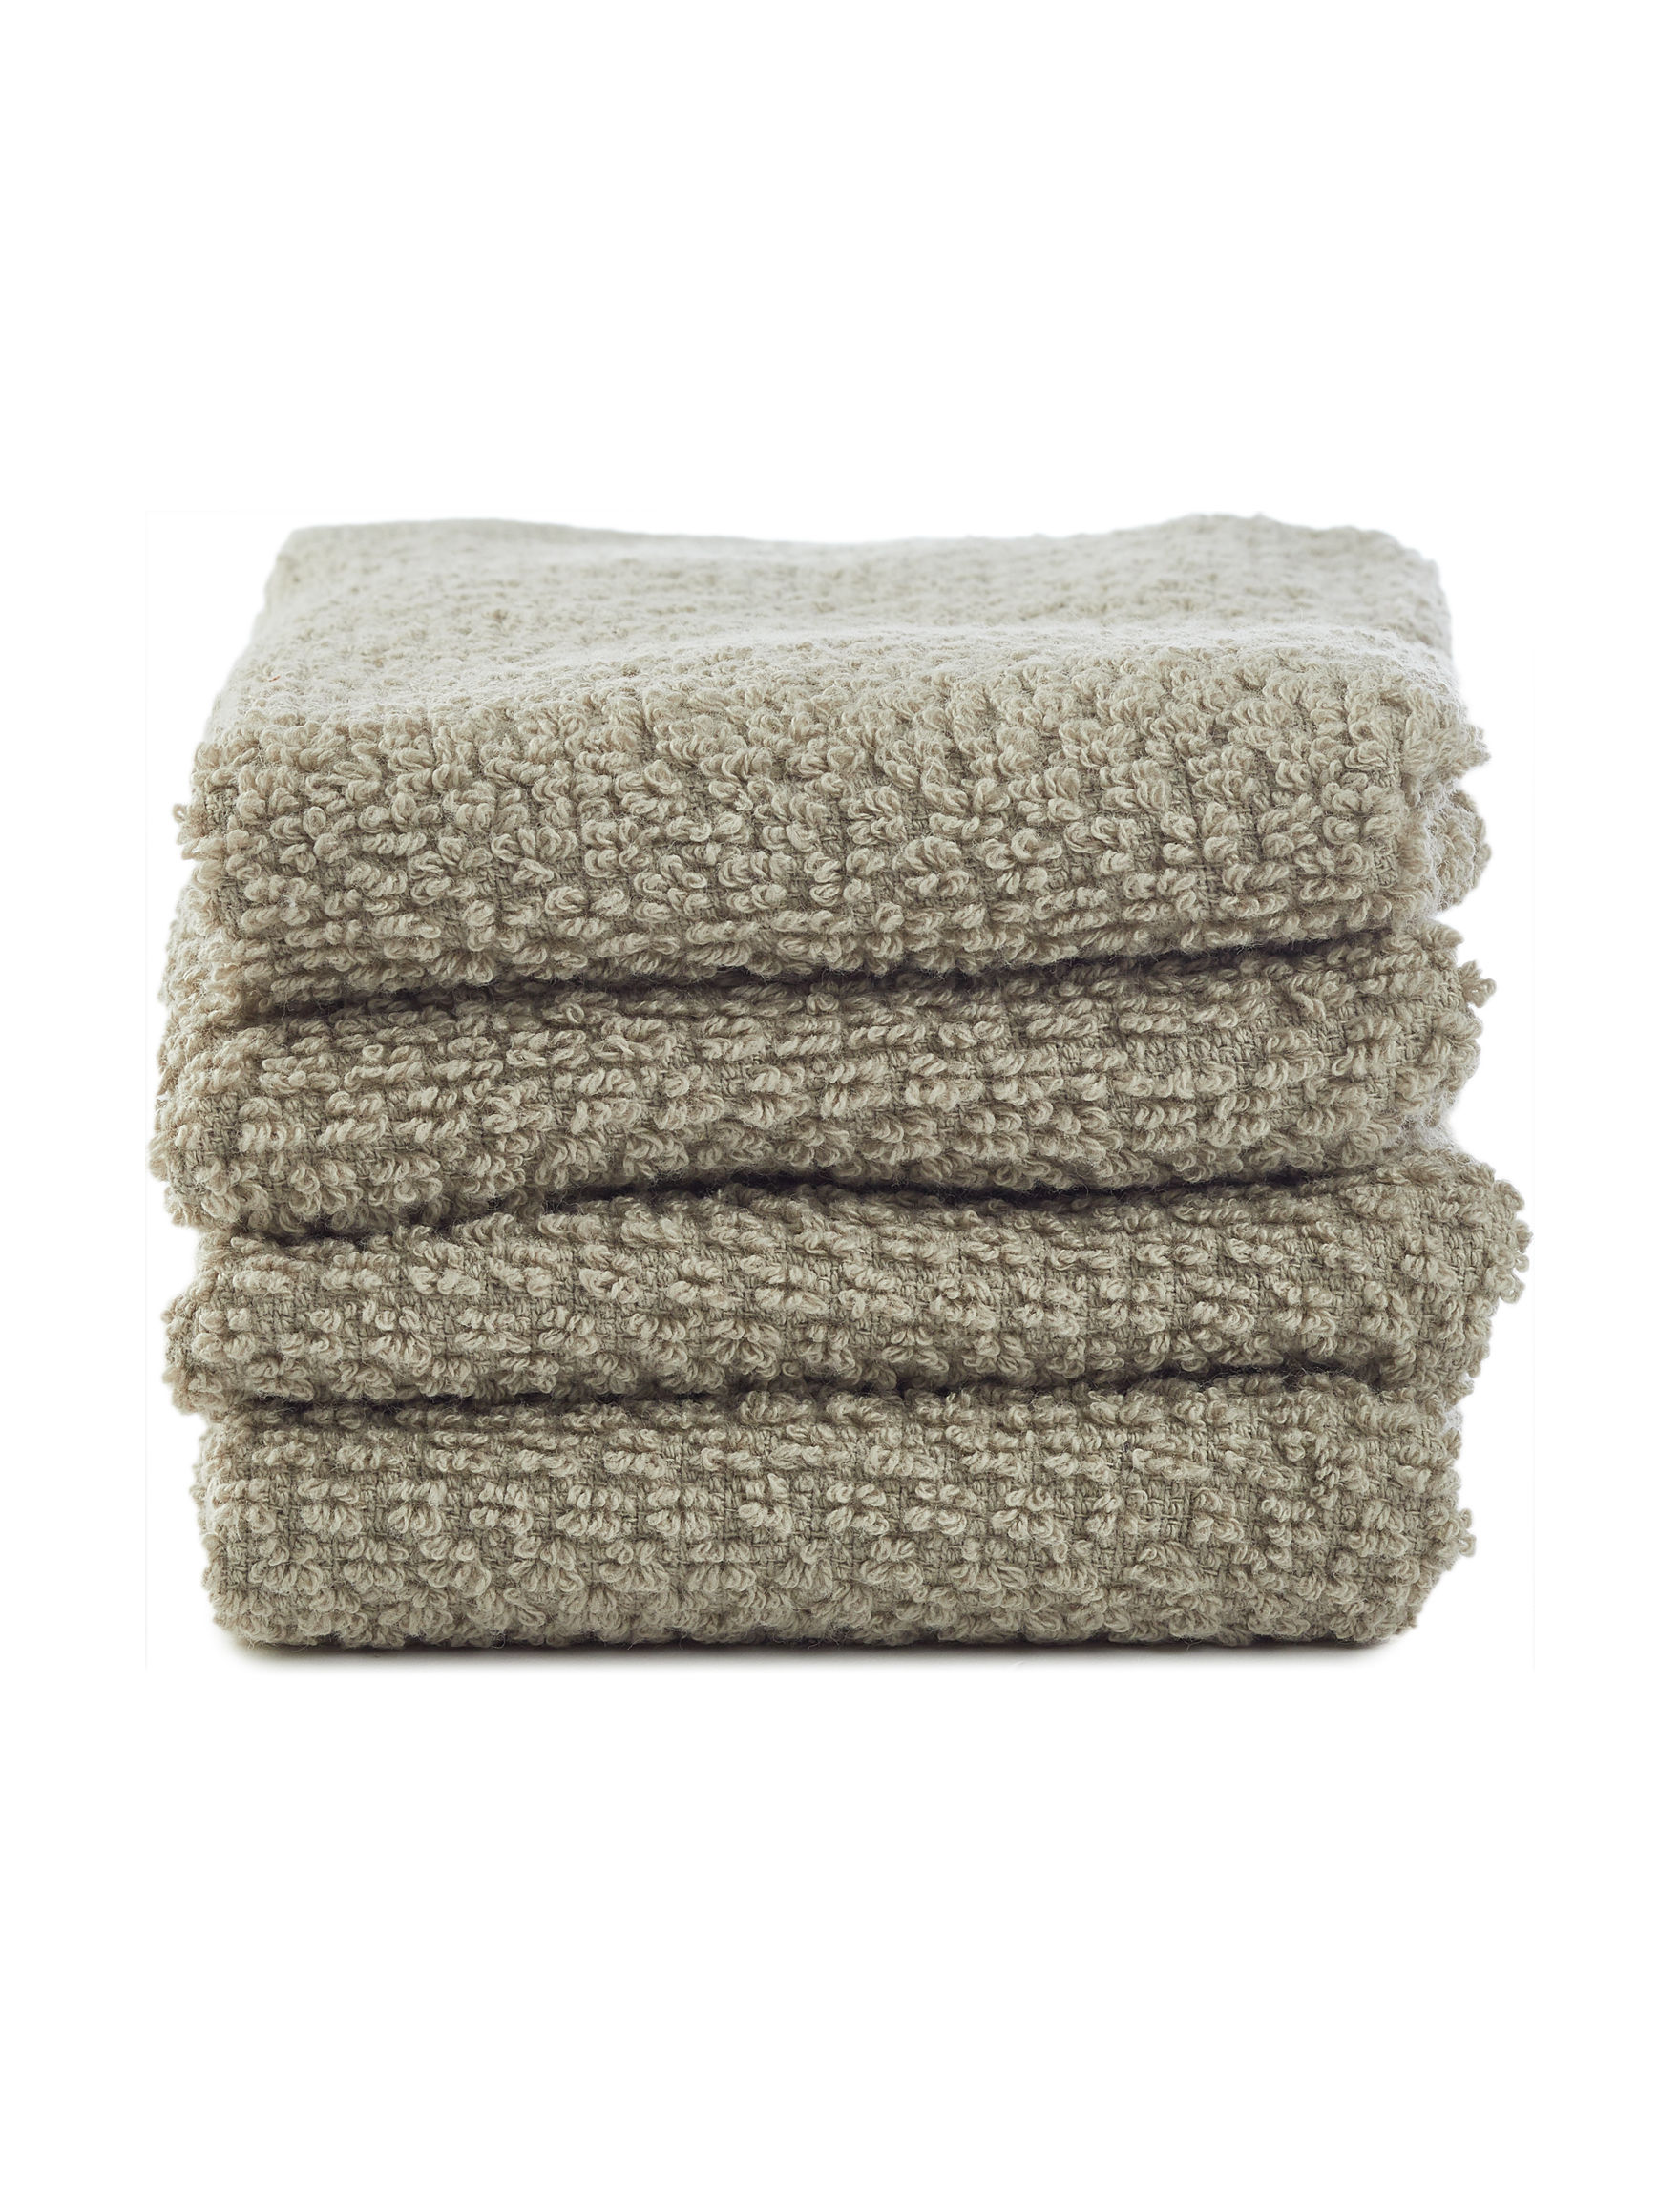 Pantry Grey Dish Towels Kitchen Linens